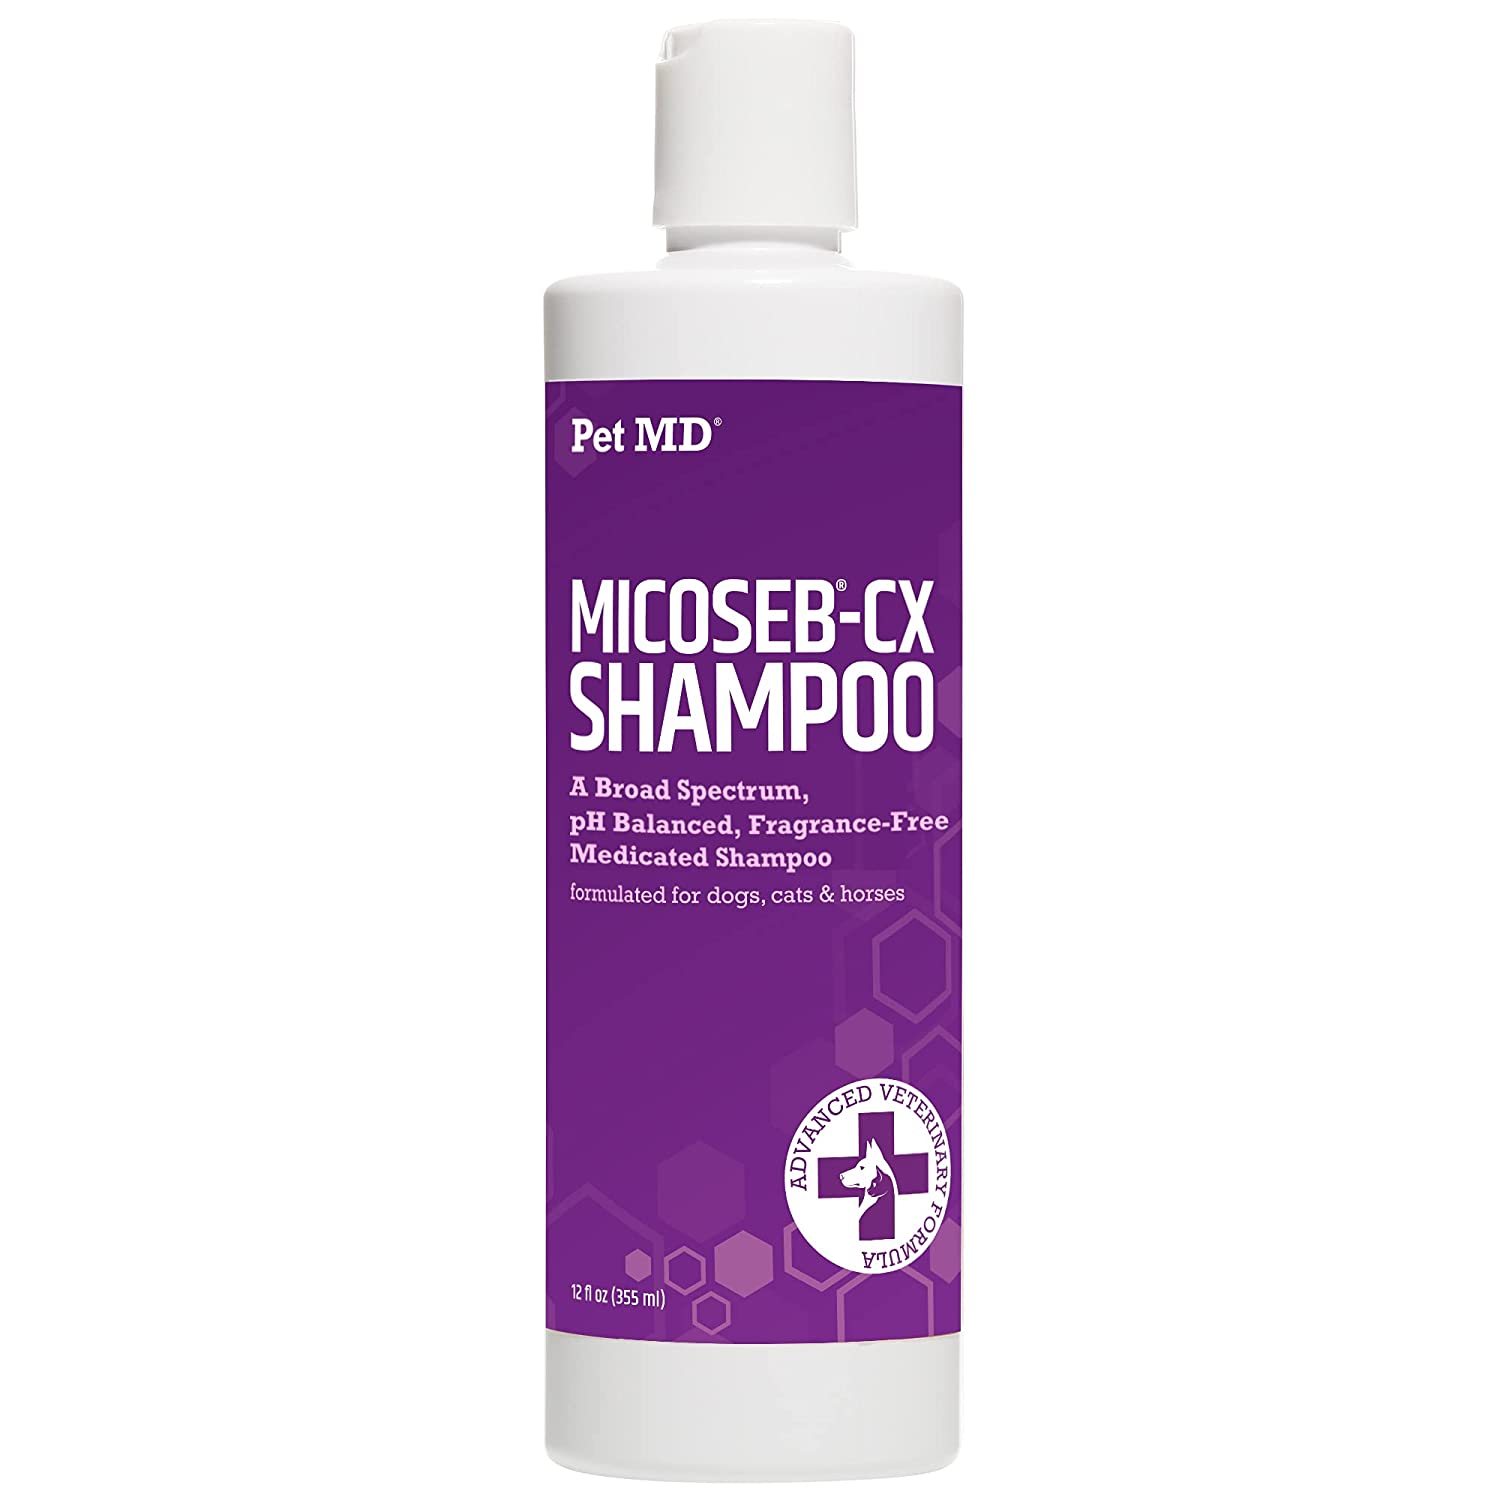 Pet MD Micoseb-CX Medicated Shampoo wit Portland Mall Dogs Cats for Austin Mall Horses